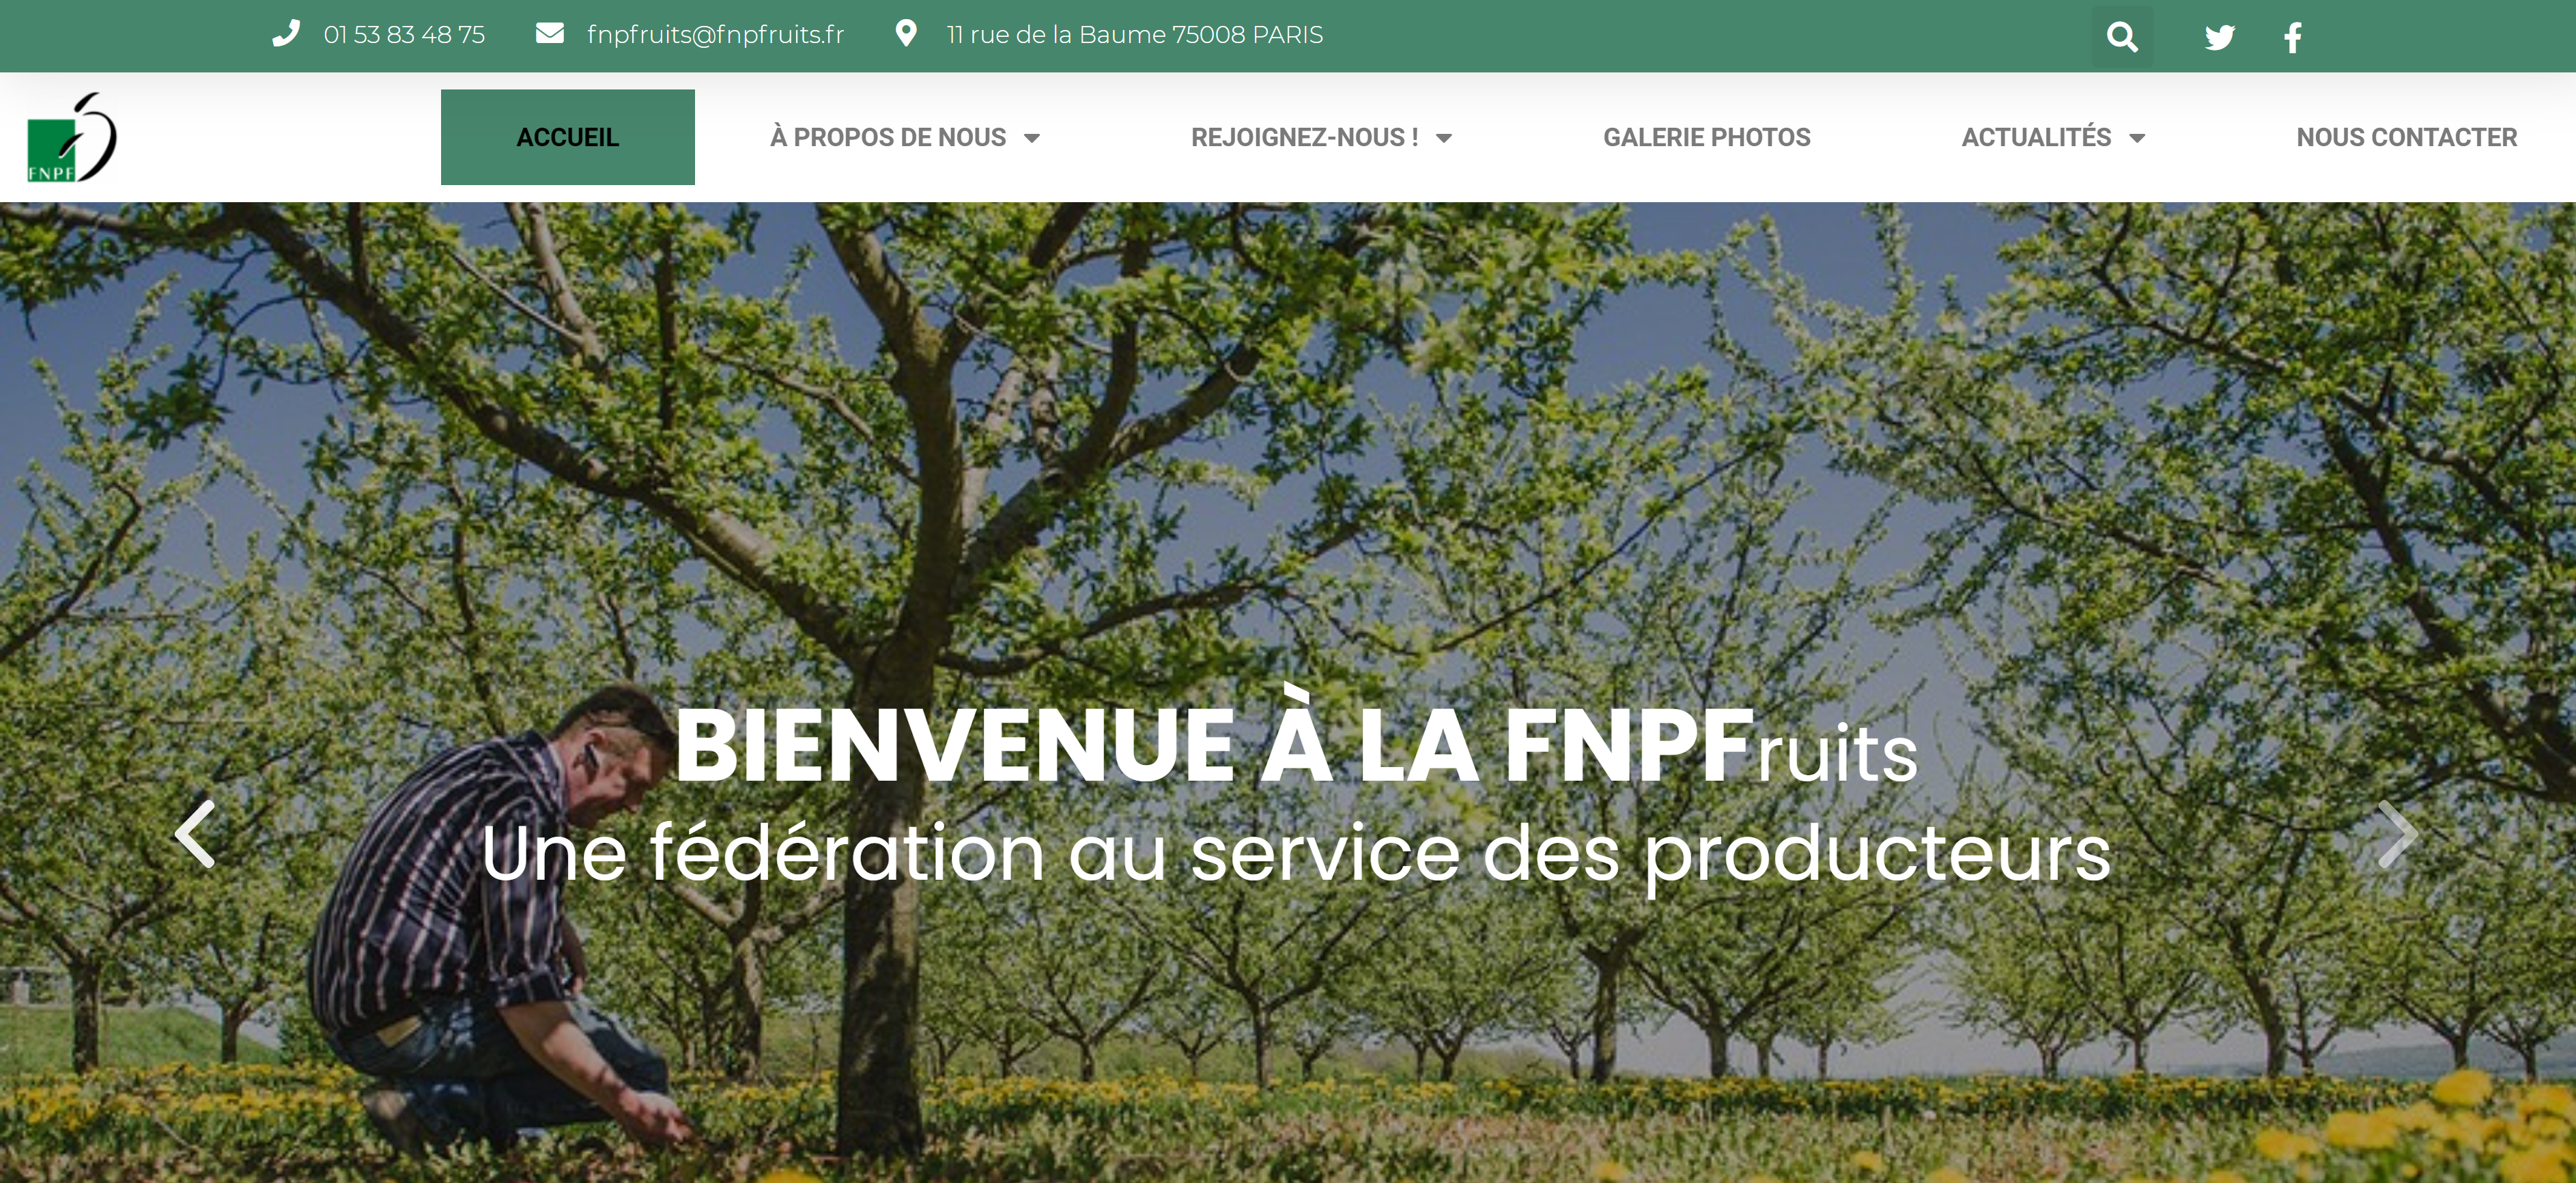 Site FNPF Accueil - Mathis BEHAEGEL